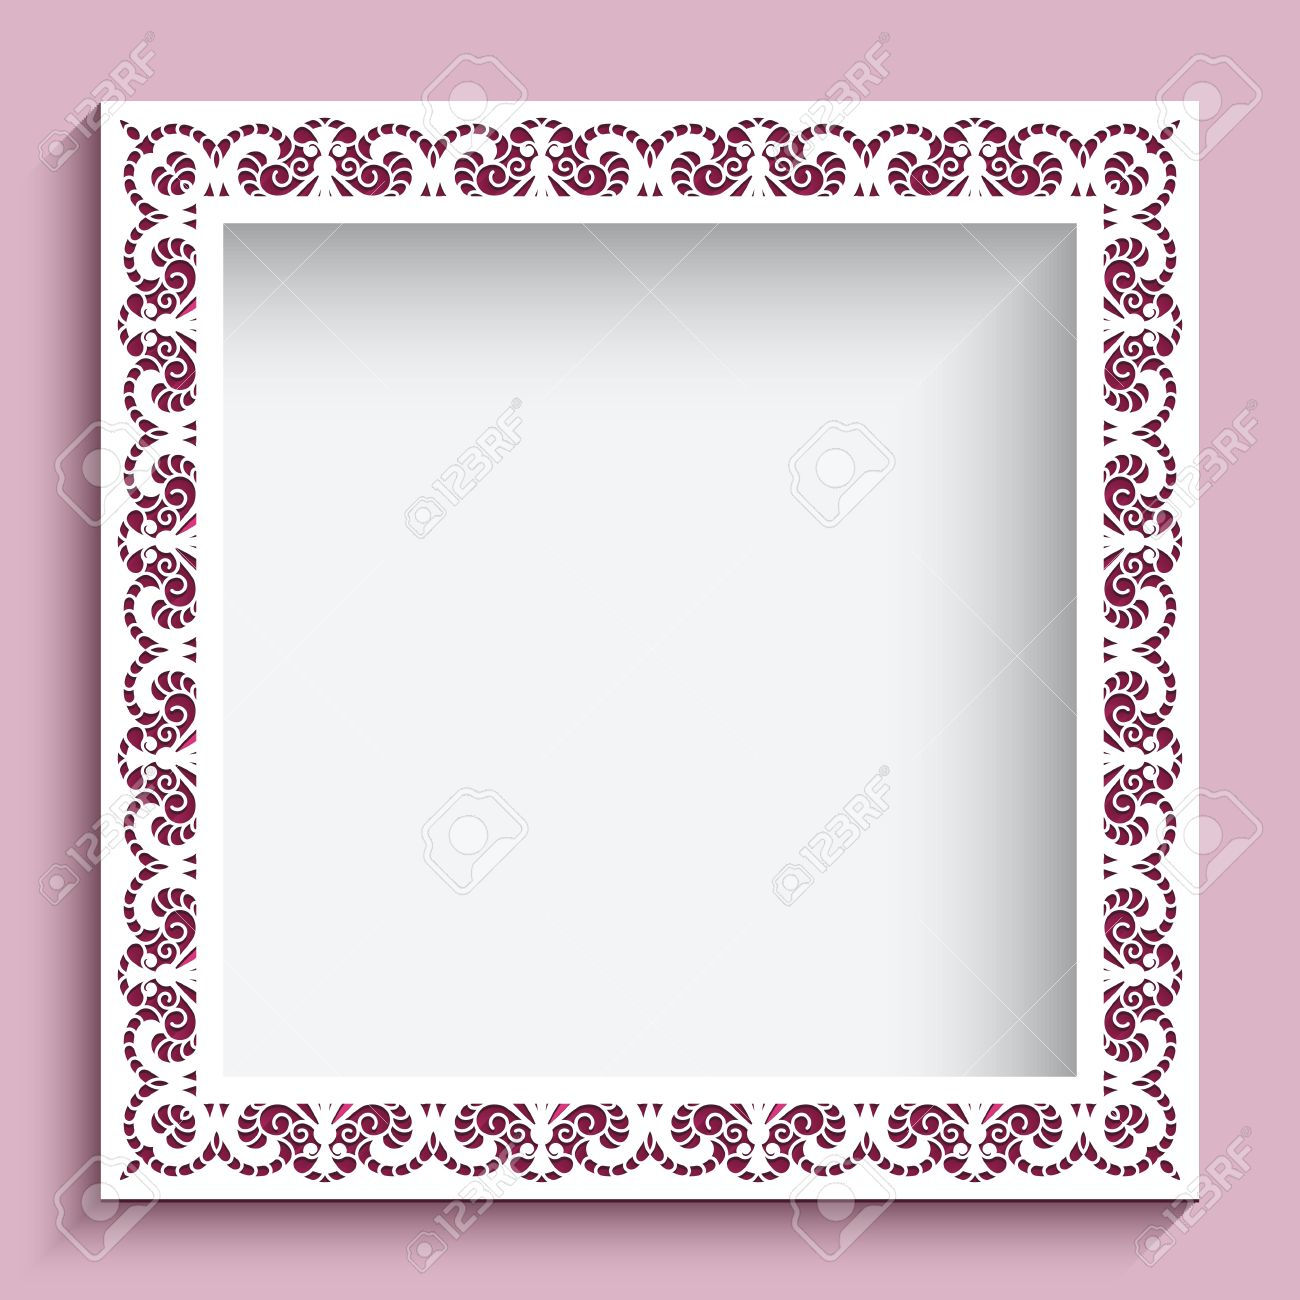 Square frame with paper swirls, ornamental lace background - 43136295